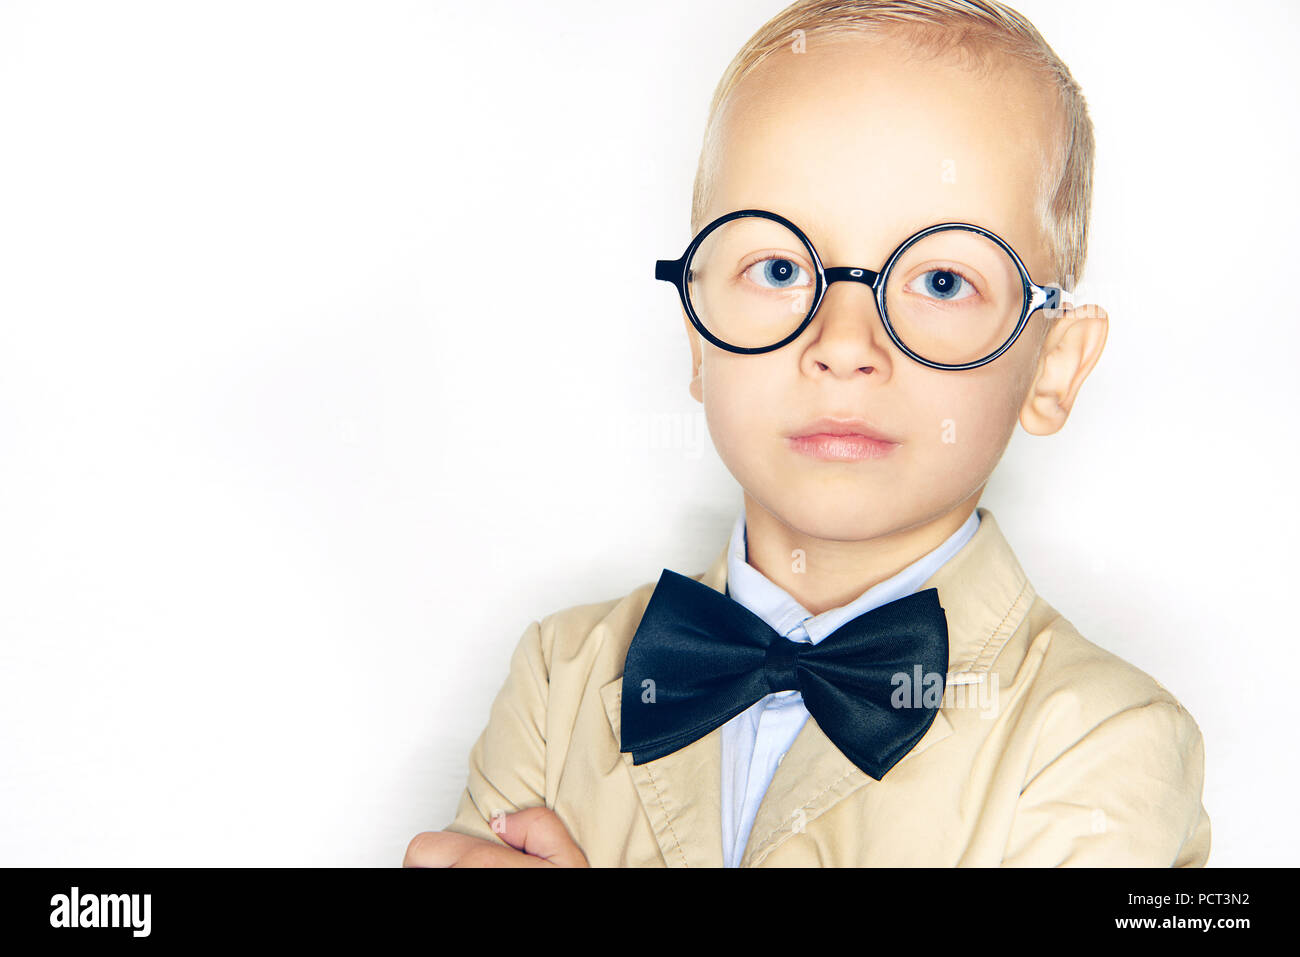 Blonde Boy With Glasses